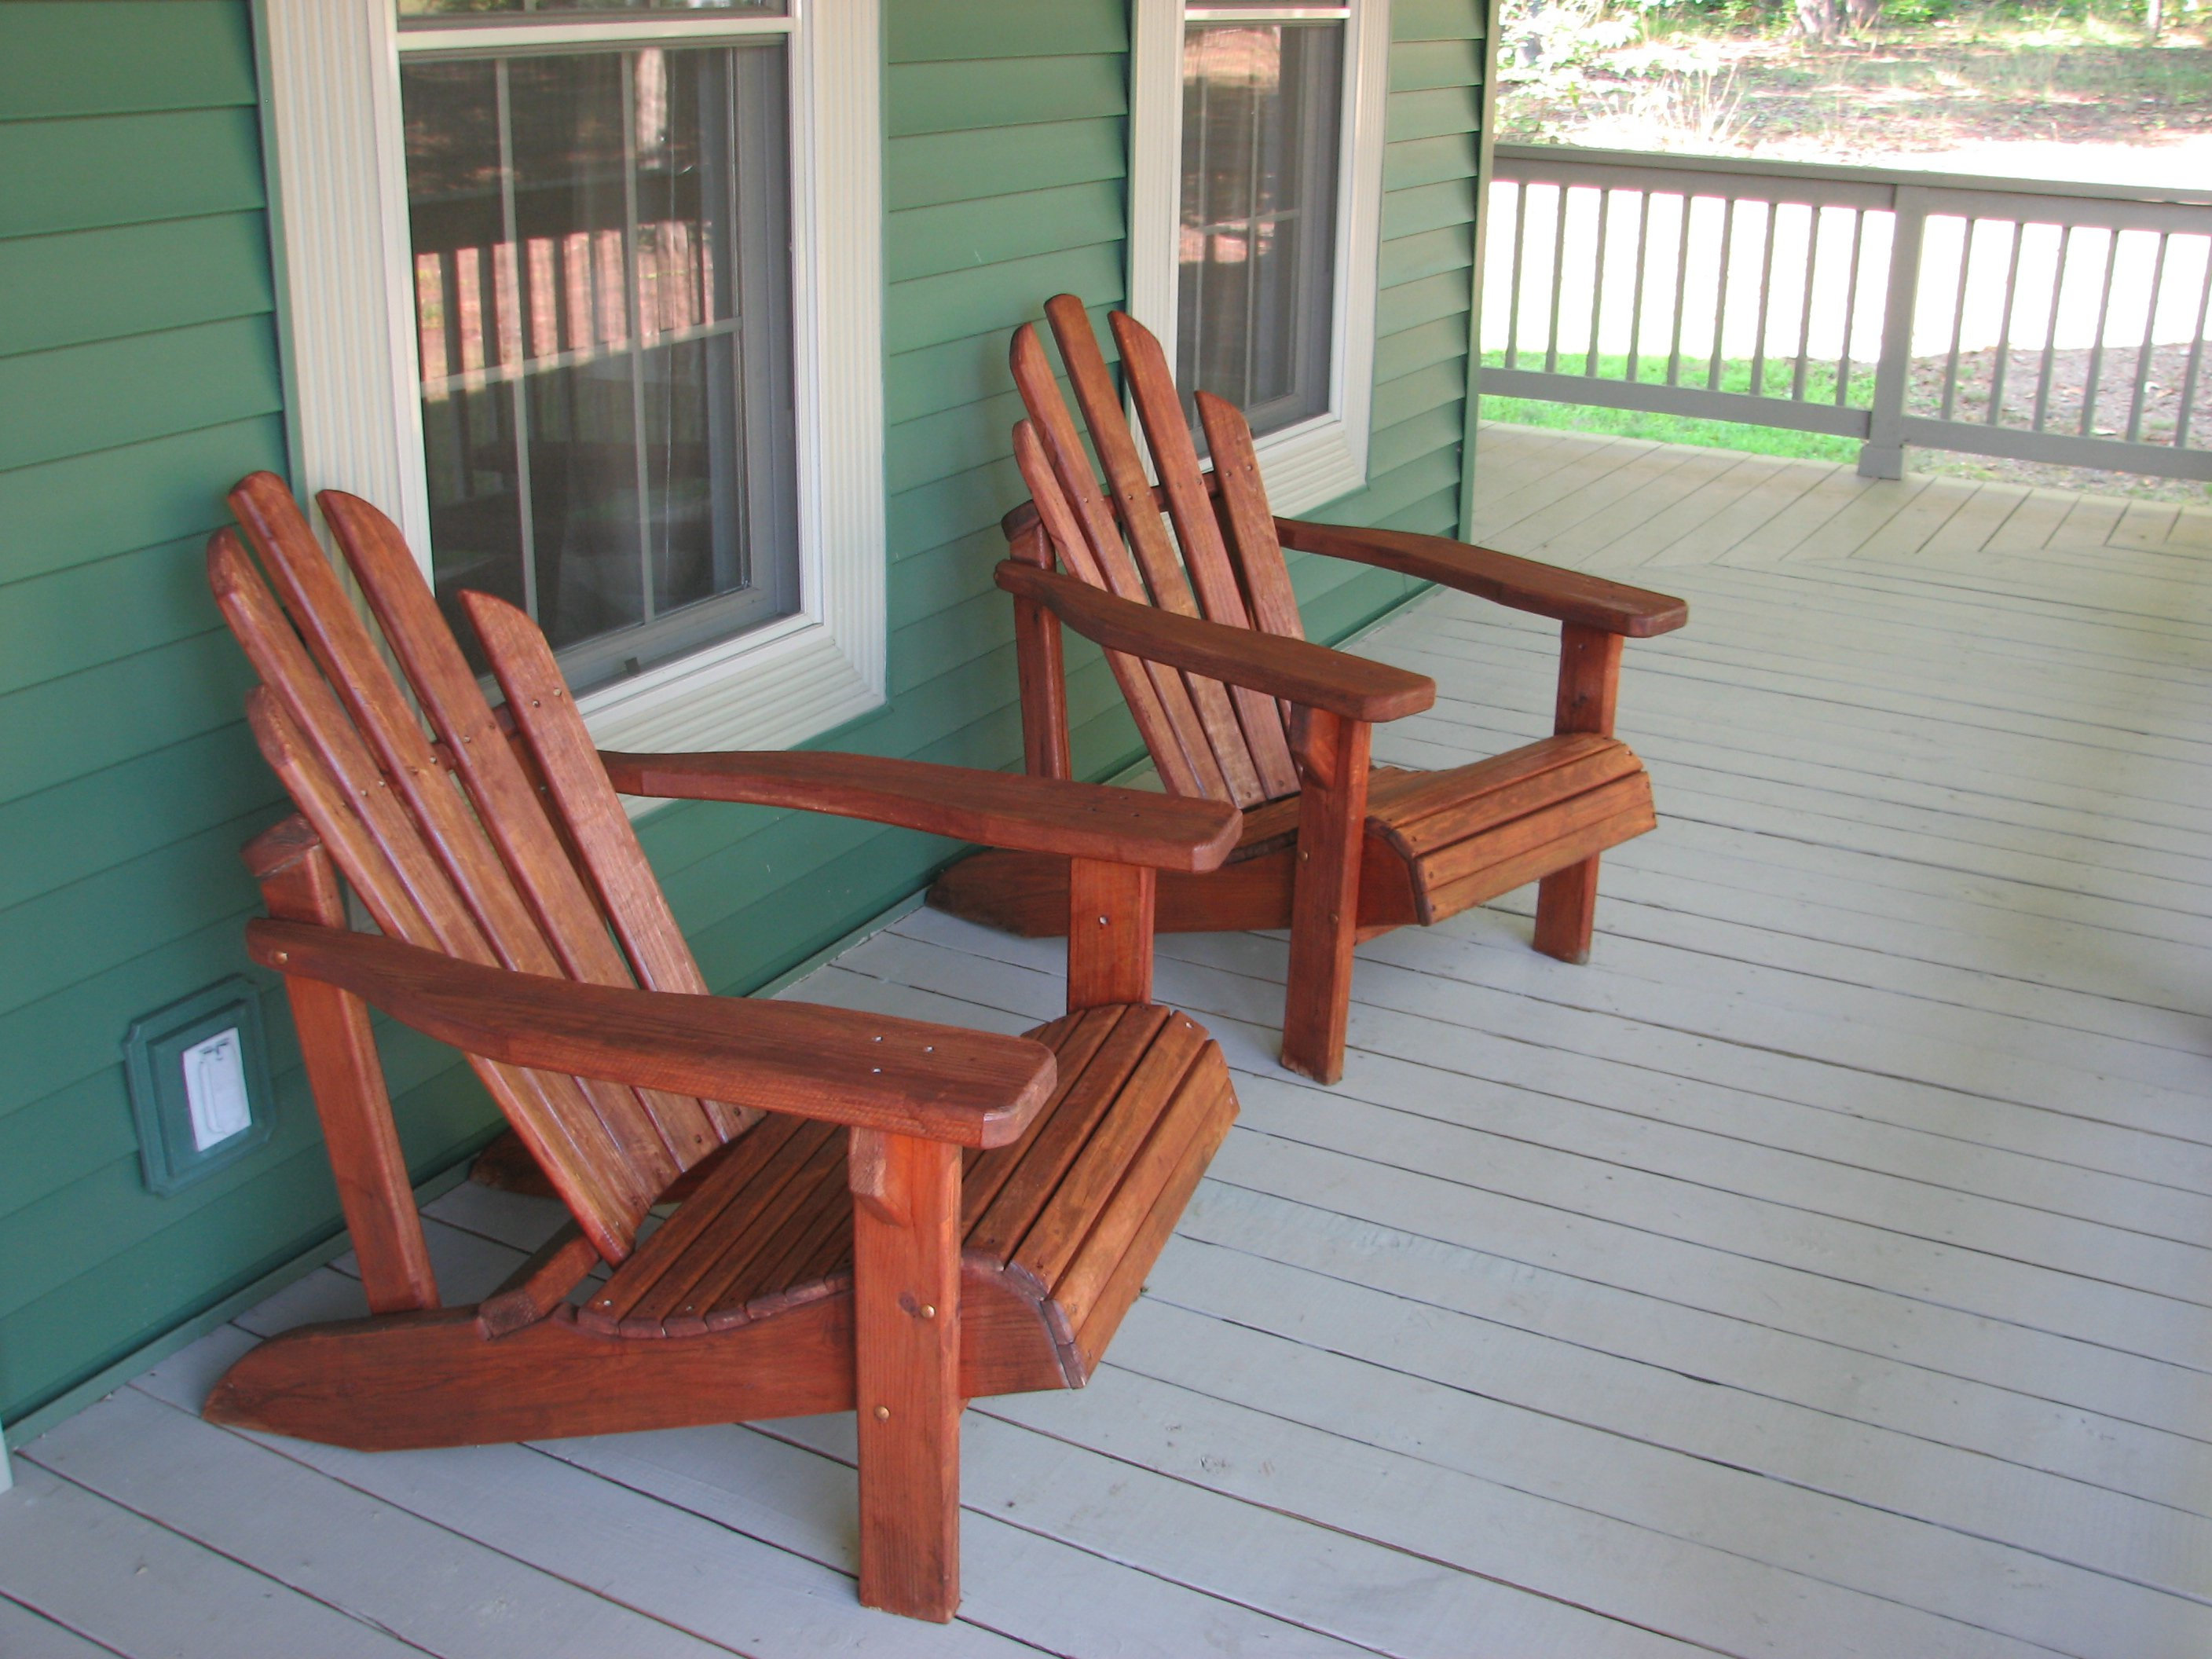 Re staining adirondack chairs living rich on lessliving What are chairs made of